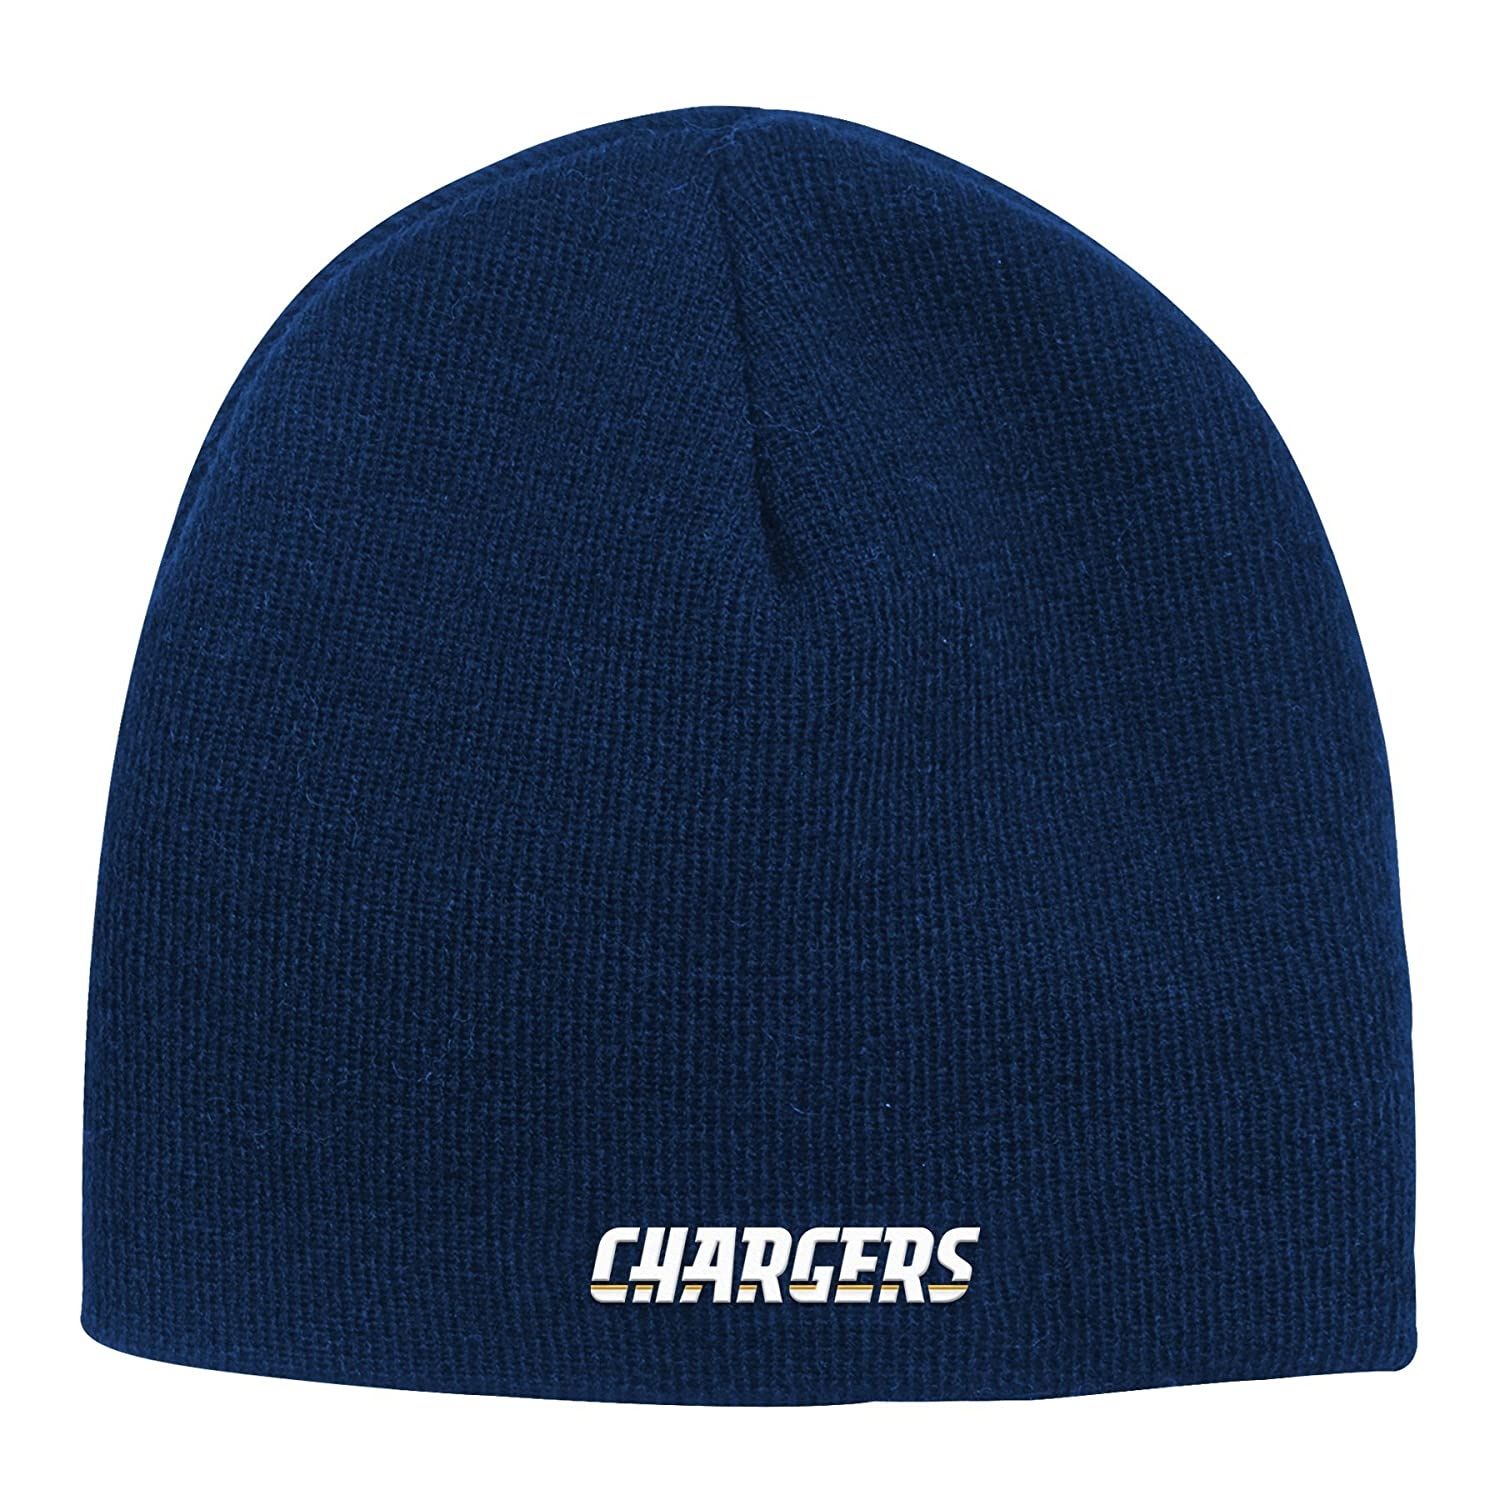 e6bfaa5d945 Amazon.com   Outerstuff NFL Youth Boys Basic Cuffless Knit Hat-Dark Navy-1  Size